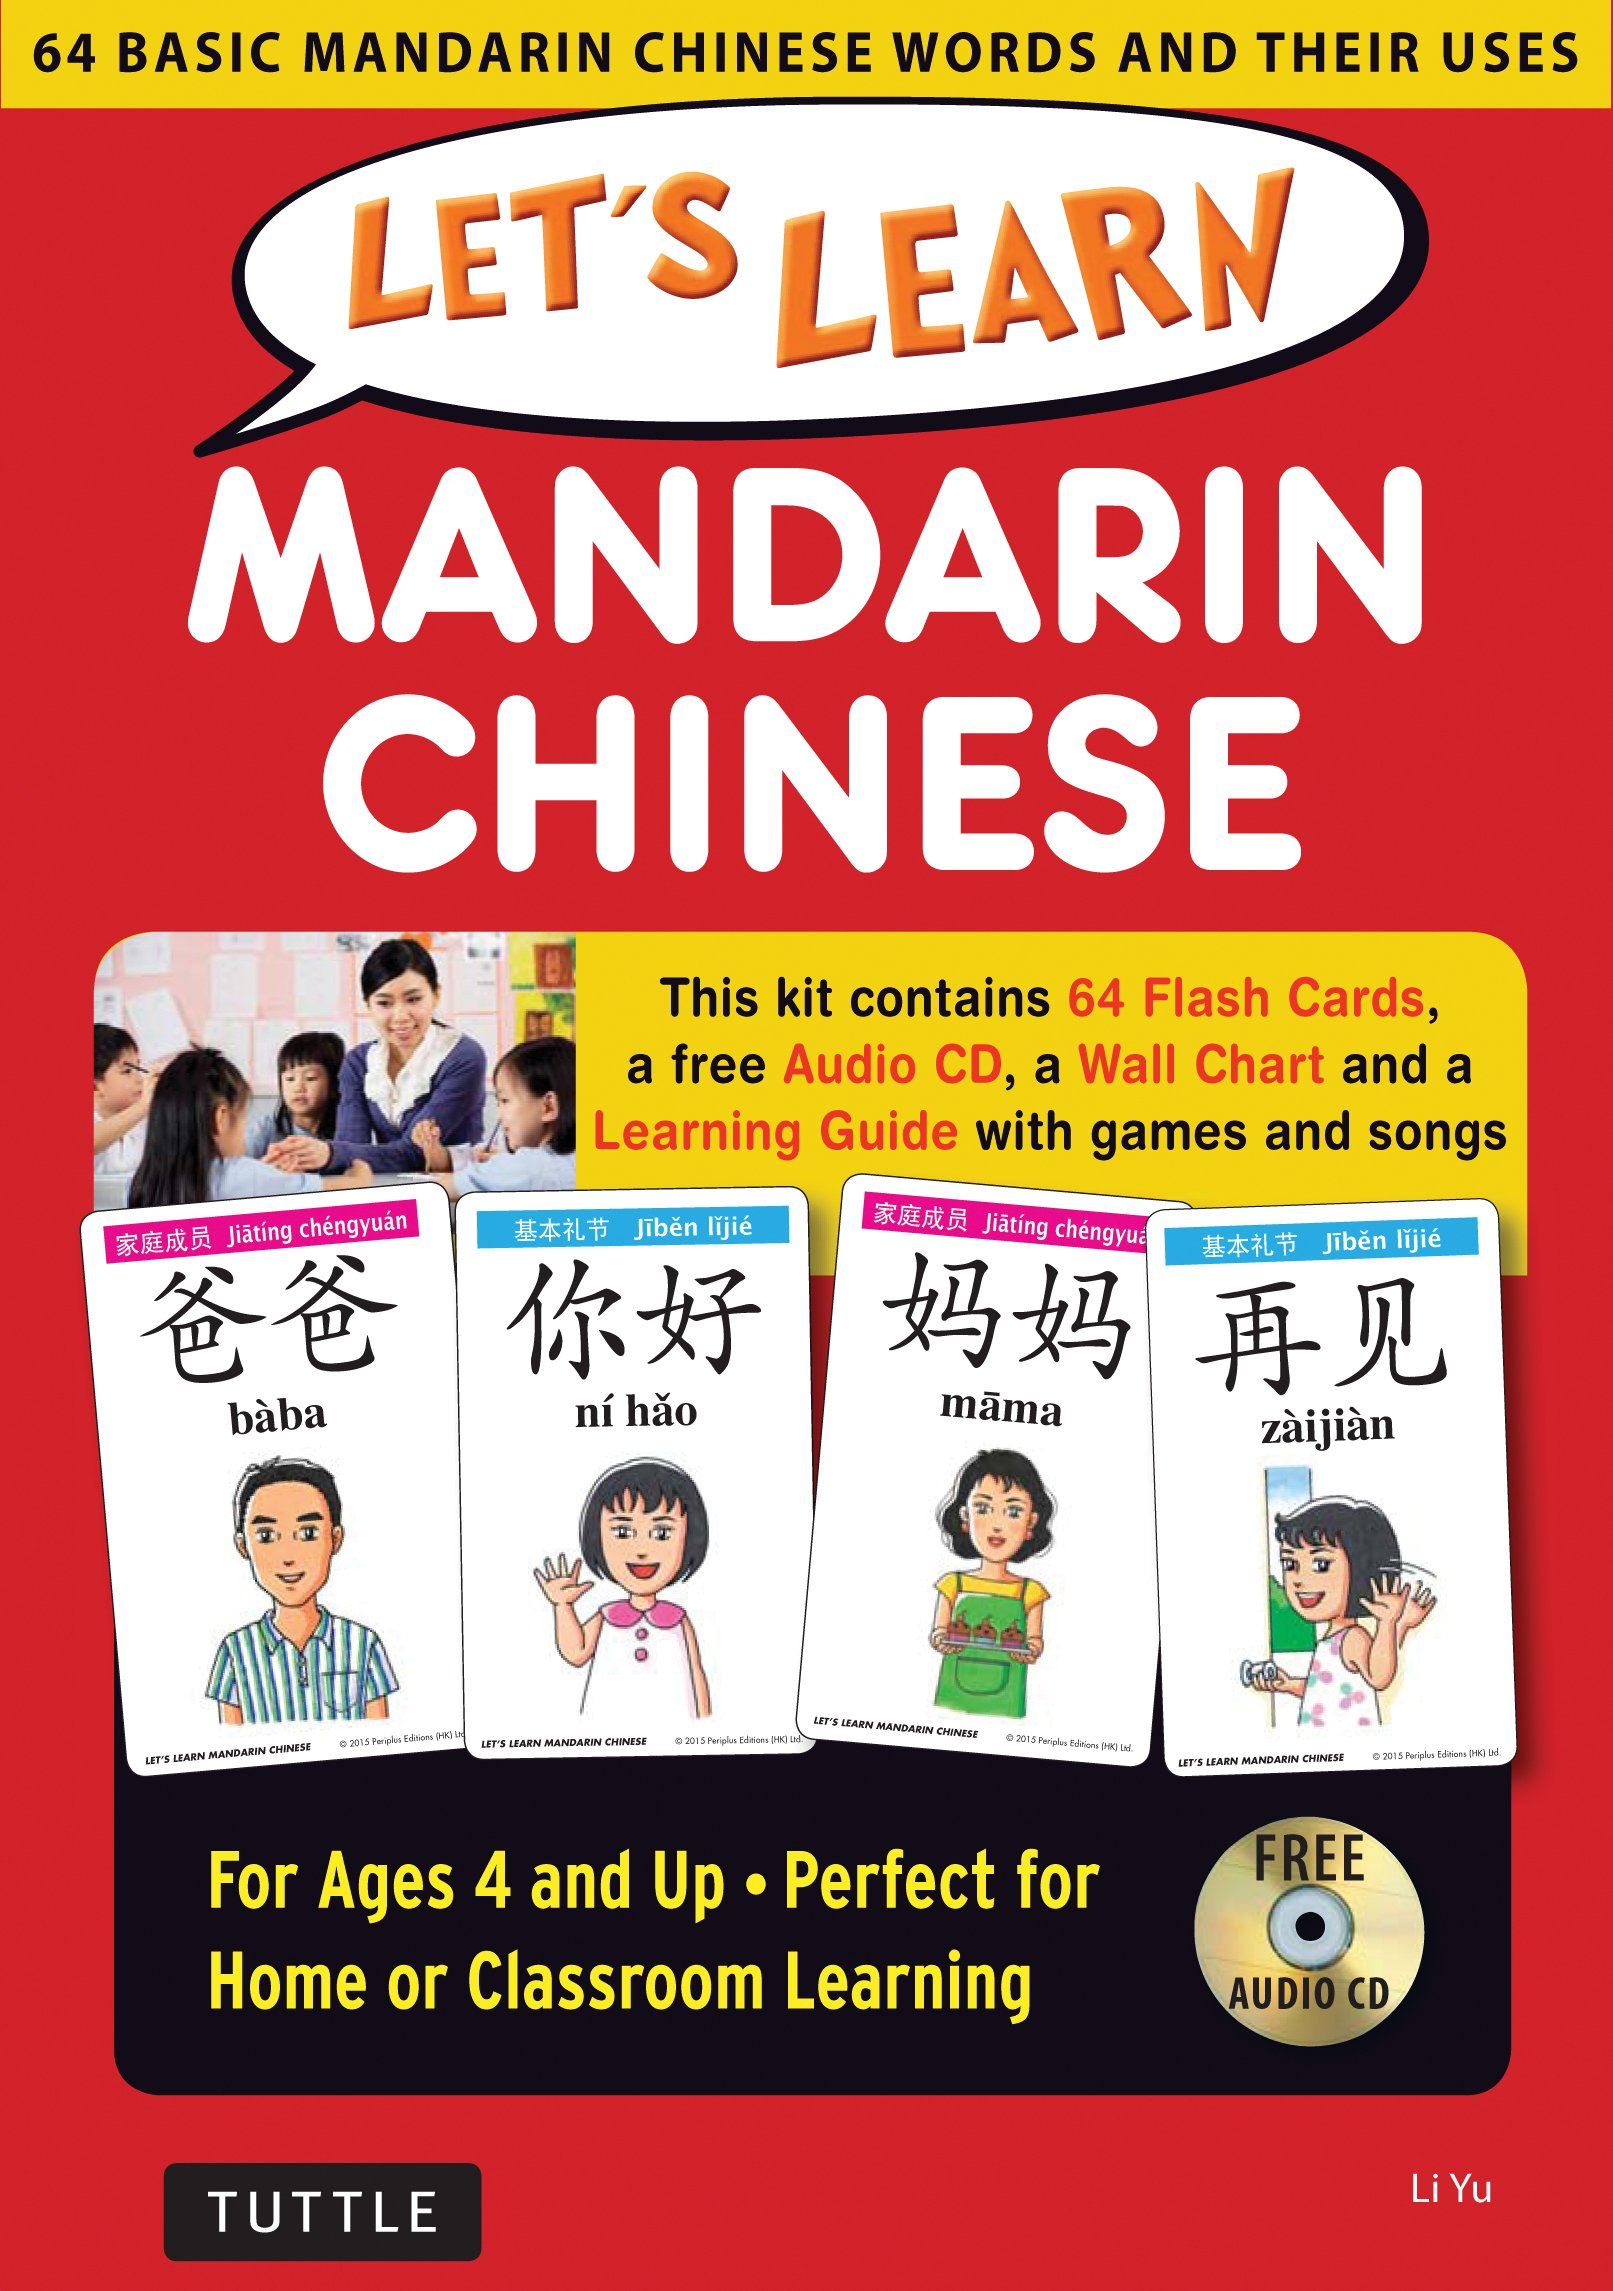 Let's Learn Mandarin Chinese Kit: 64 Basic Mandarin Chinese Words and Their Uses (Flashcards, Audio CD, Games & Songs, Learning Guide and Wall Chart) by Tuttle Publishing